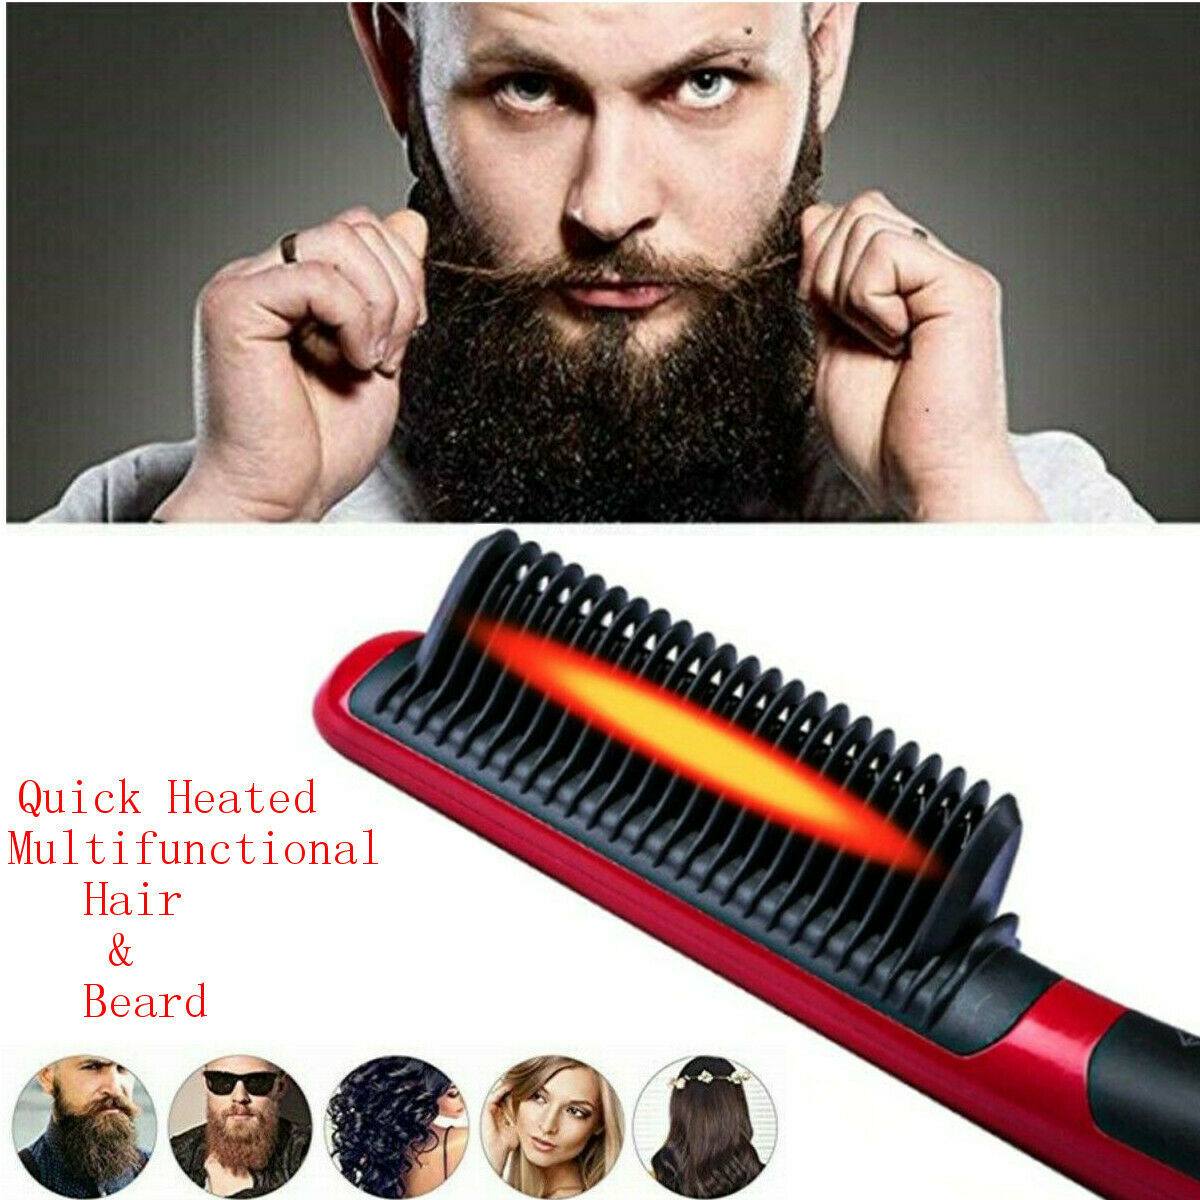 Professional Hair Brush Curling Irons Health Beauty Beard Straightener 50W Handsome Fashion Moustache Vip Link Dropshipping